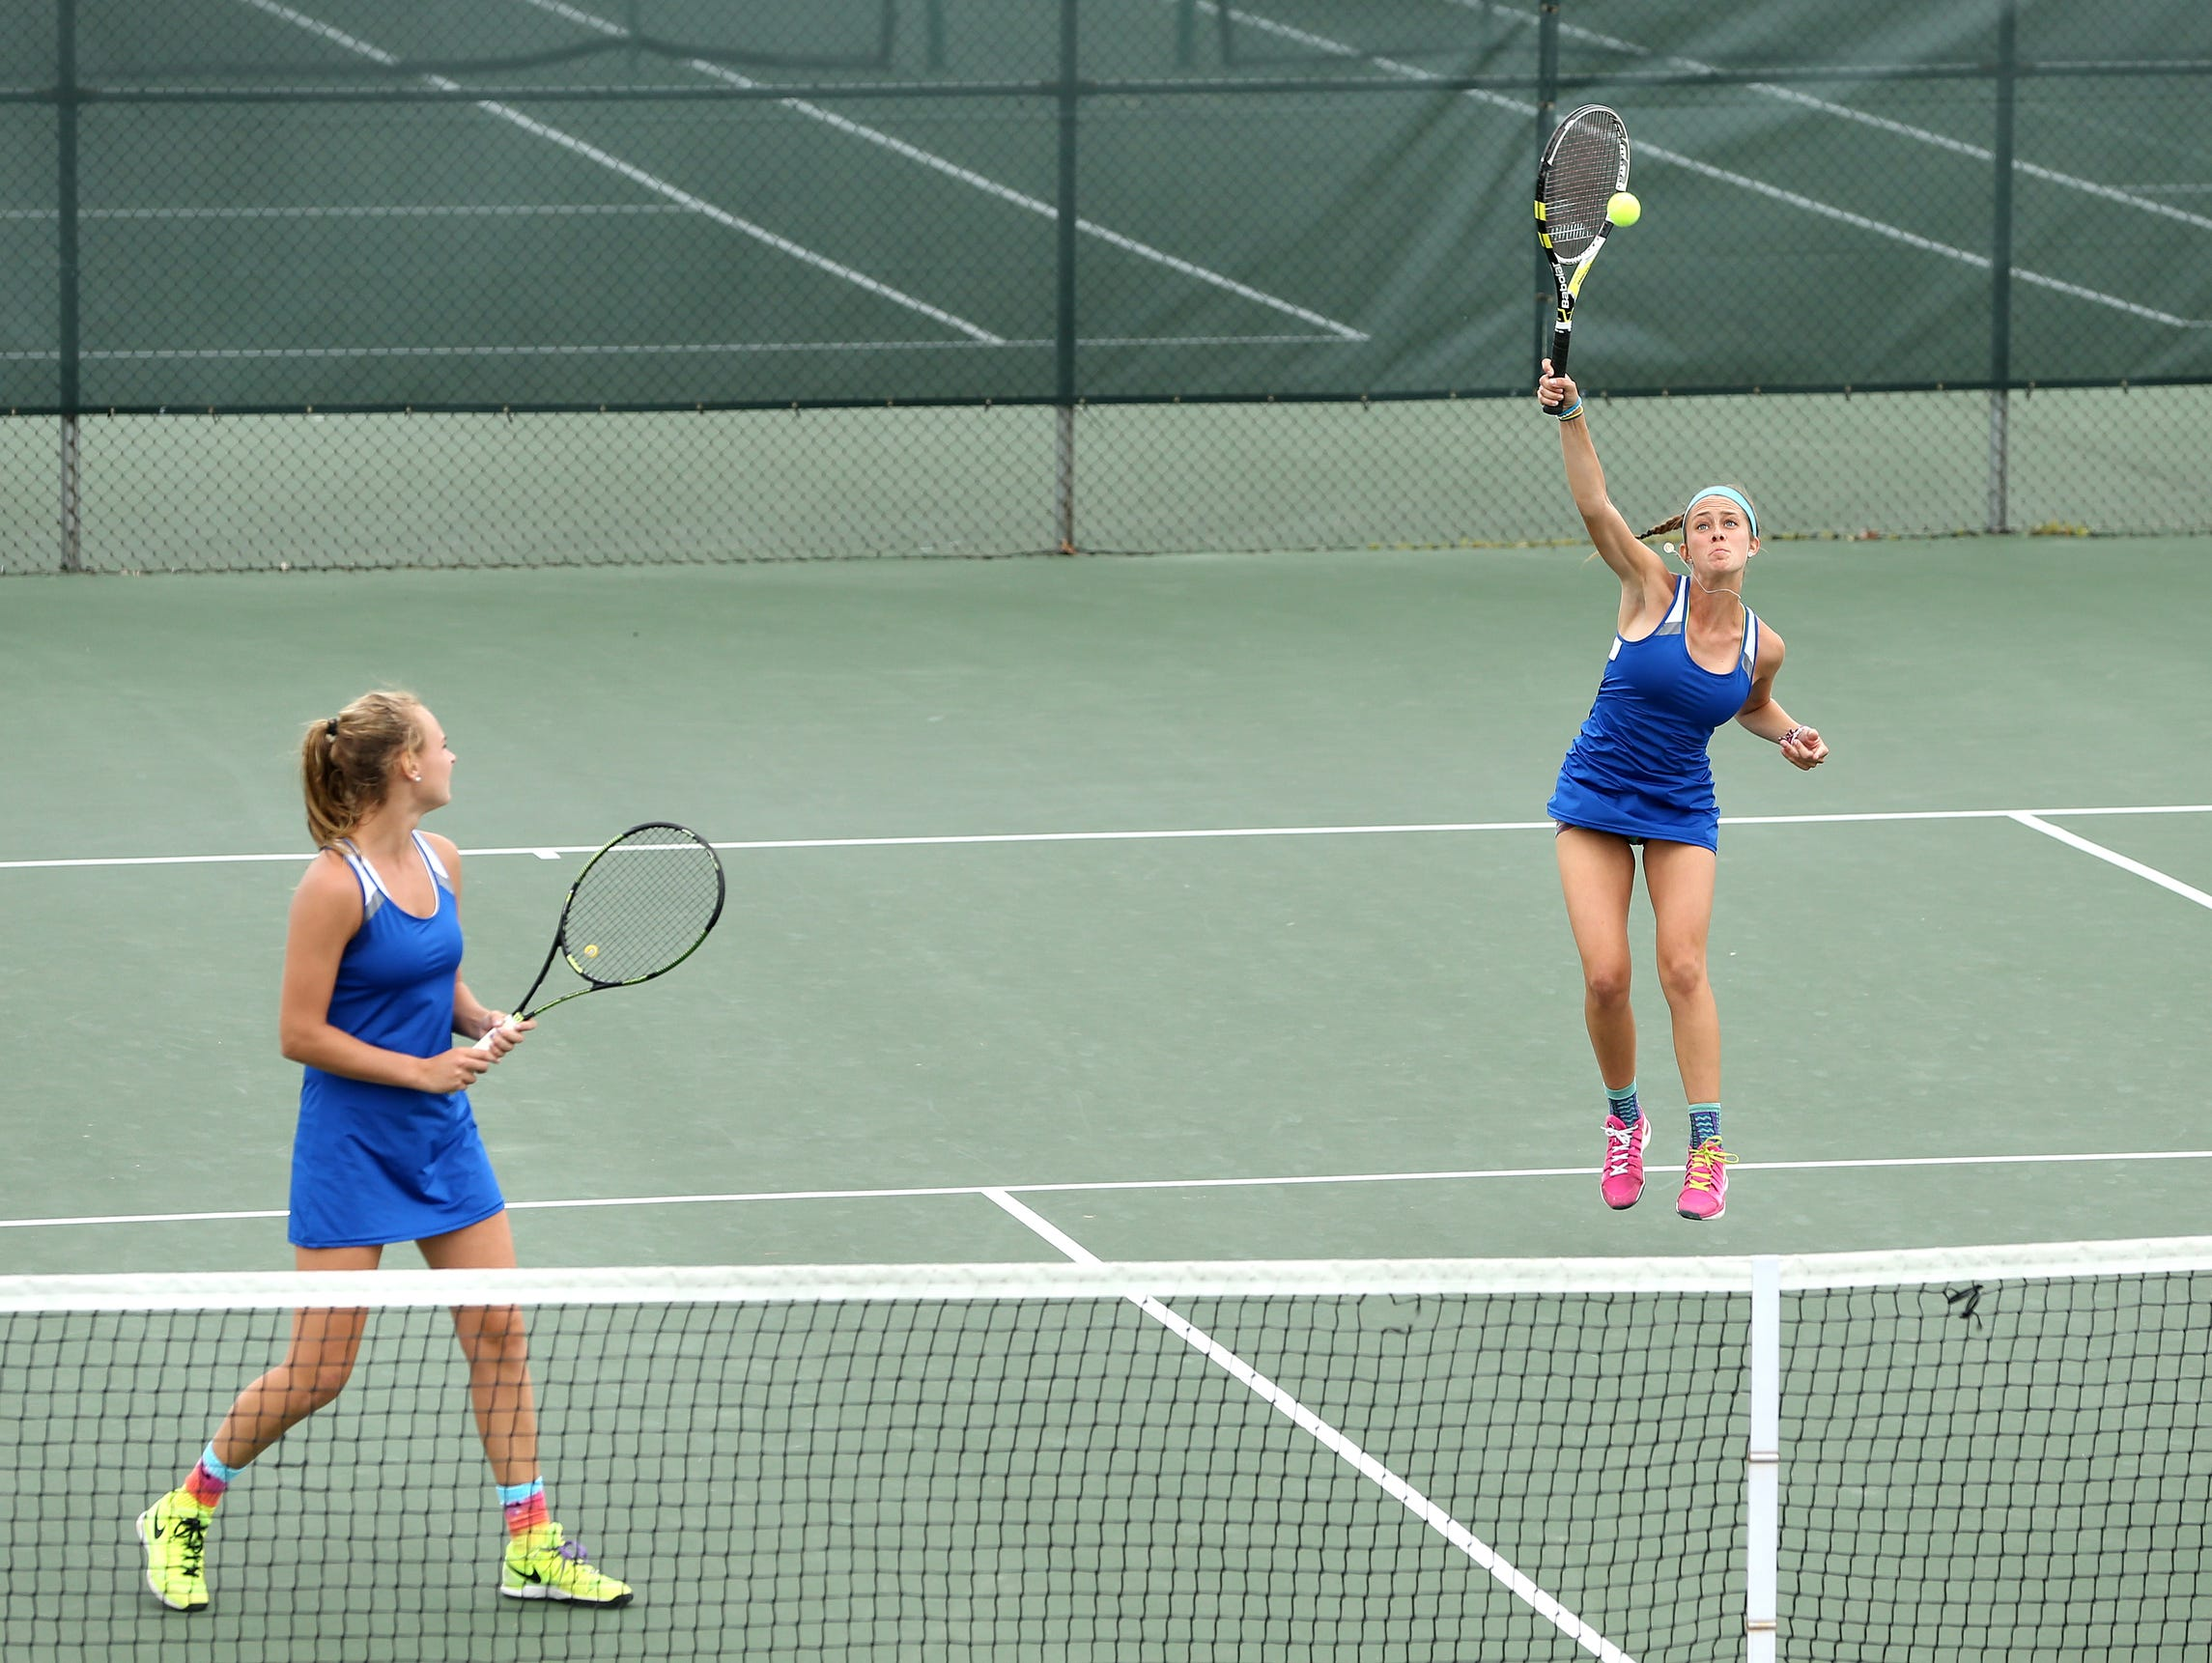 Carmel doubles players Emma Love, right, serves while teammate Lauryn Padgett watches.